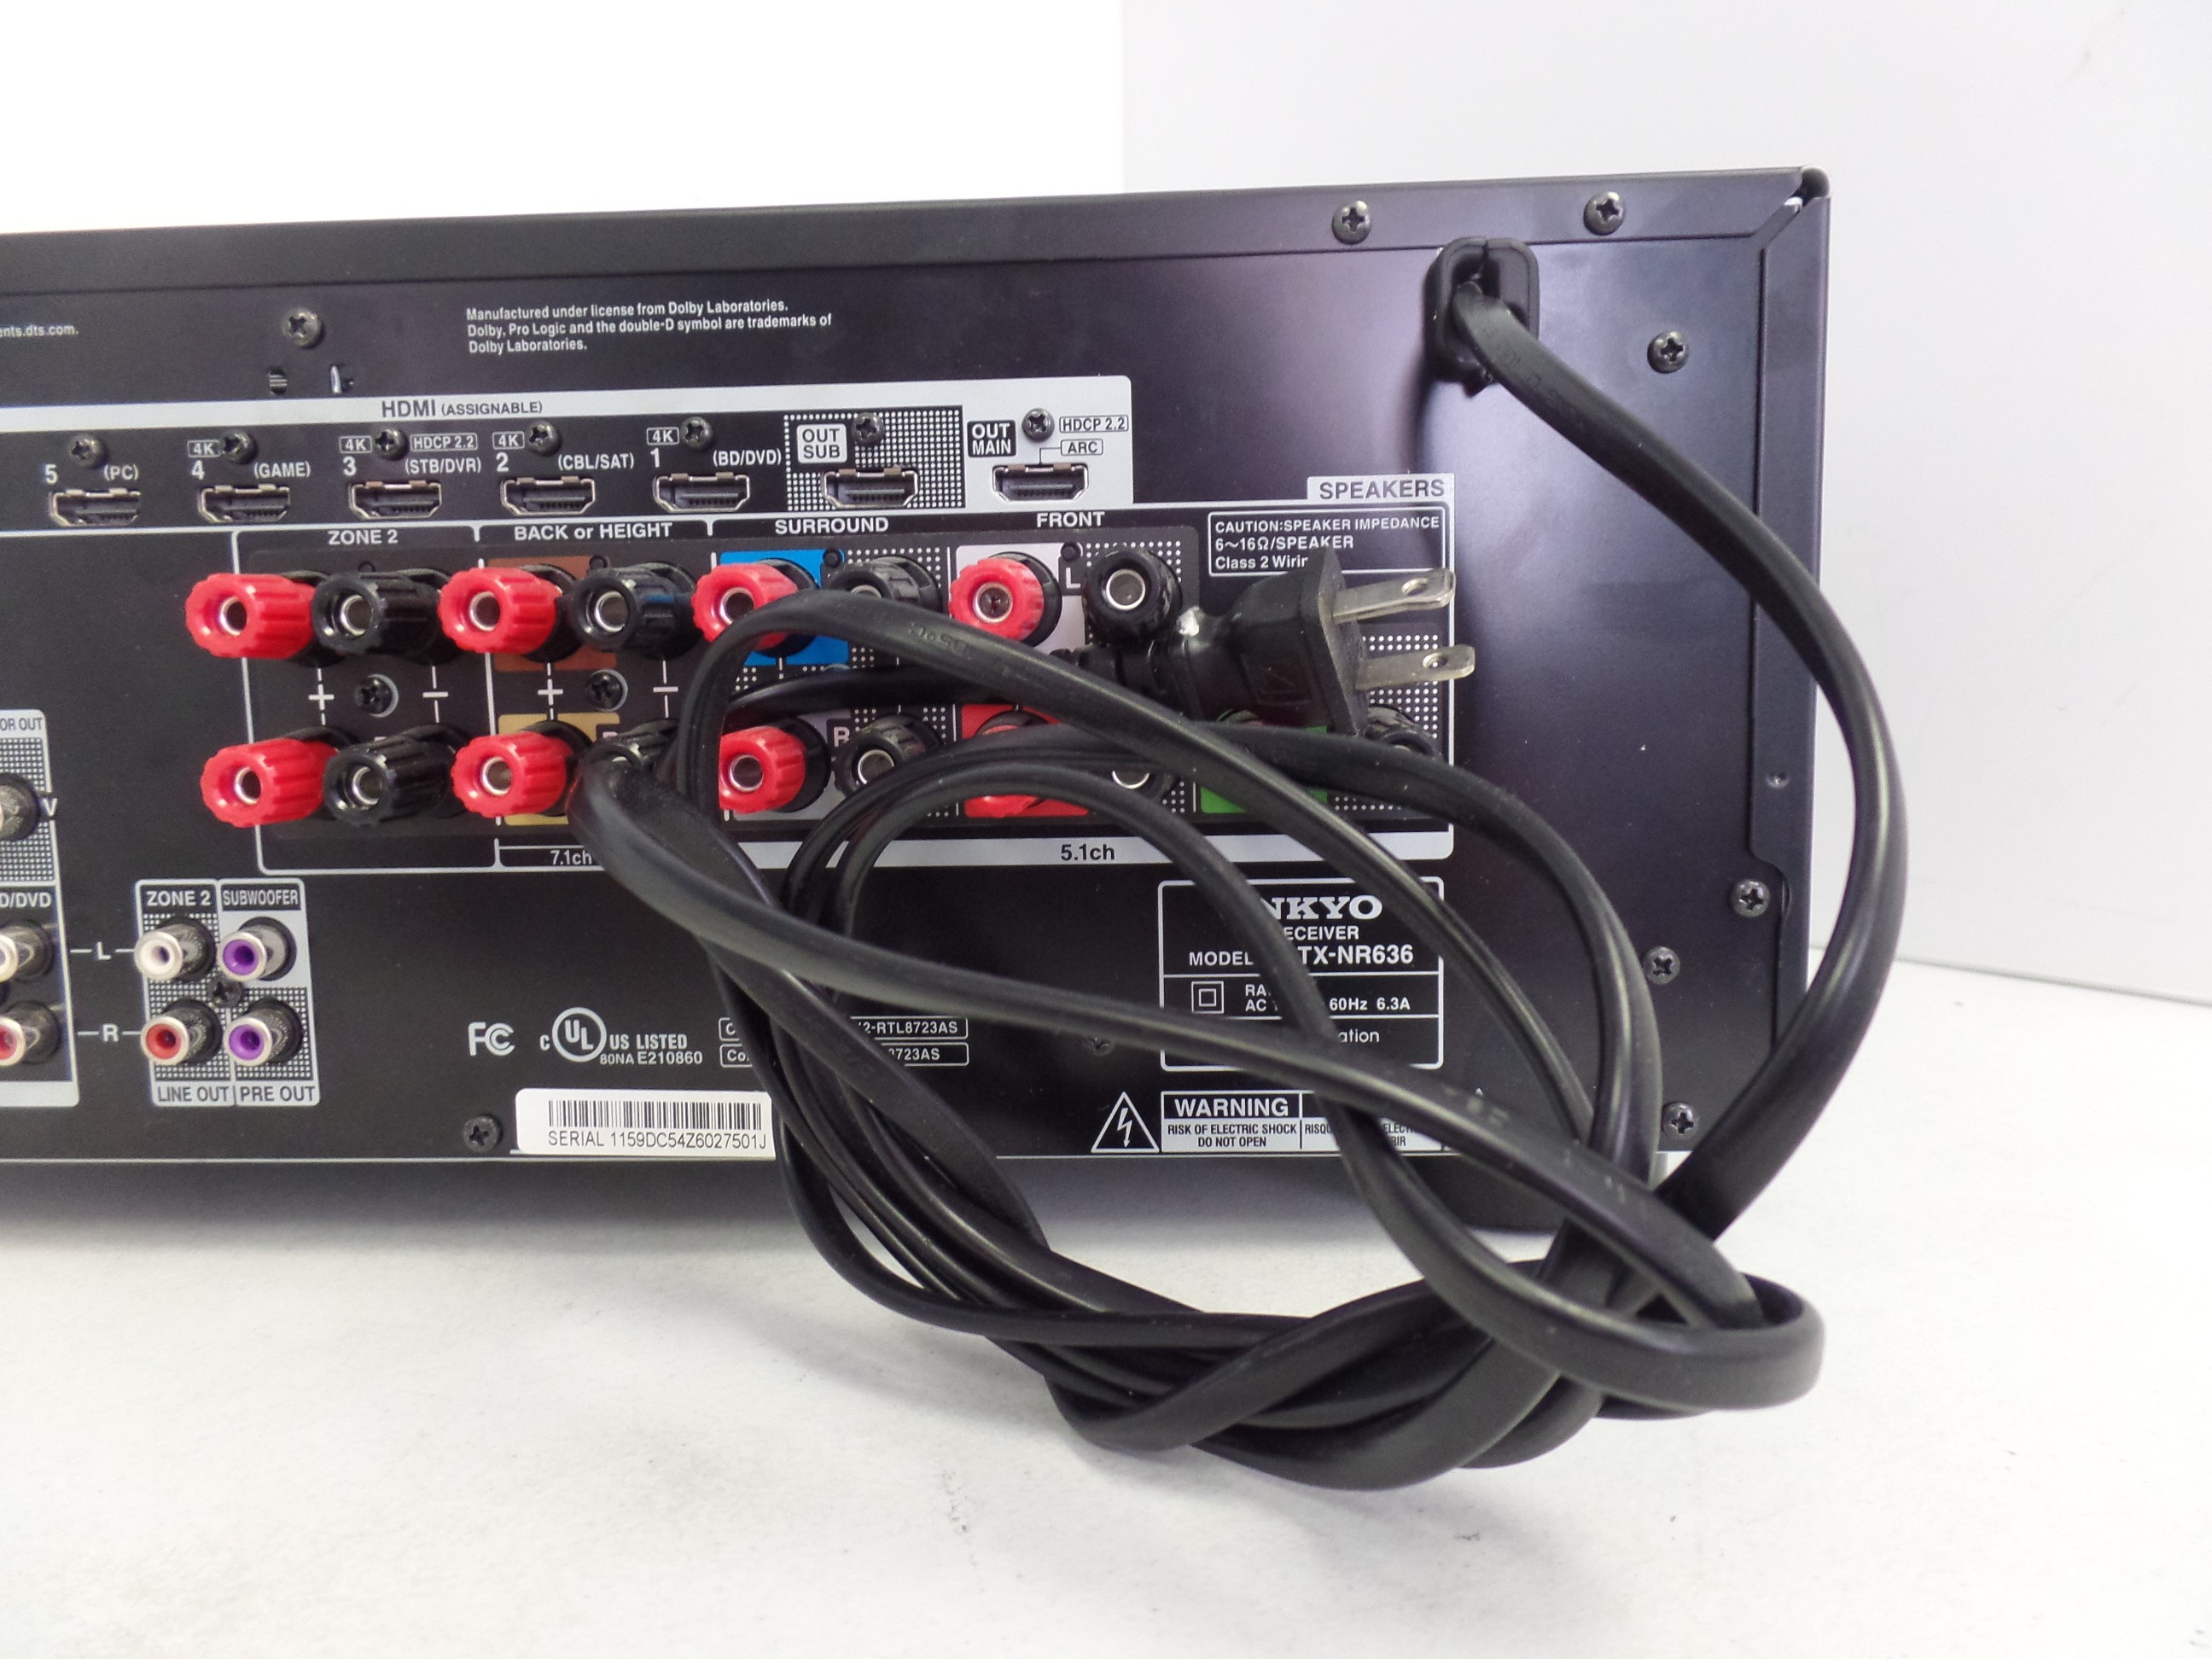 Home Theater 7 2 AV Receiver Onkyo TX-NR636 for parts #11